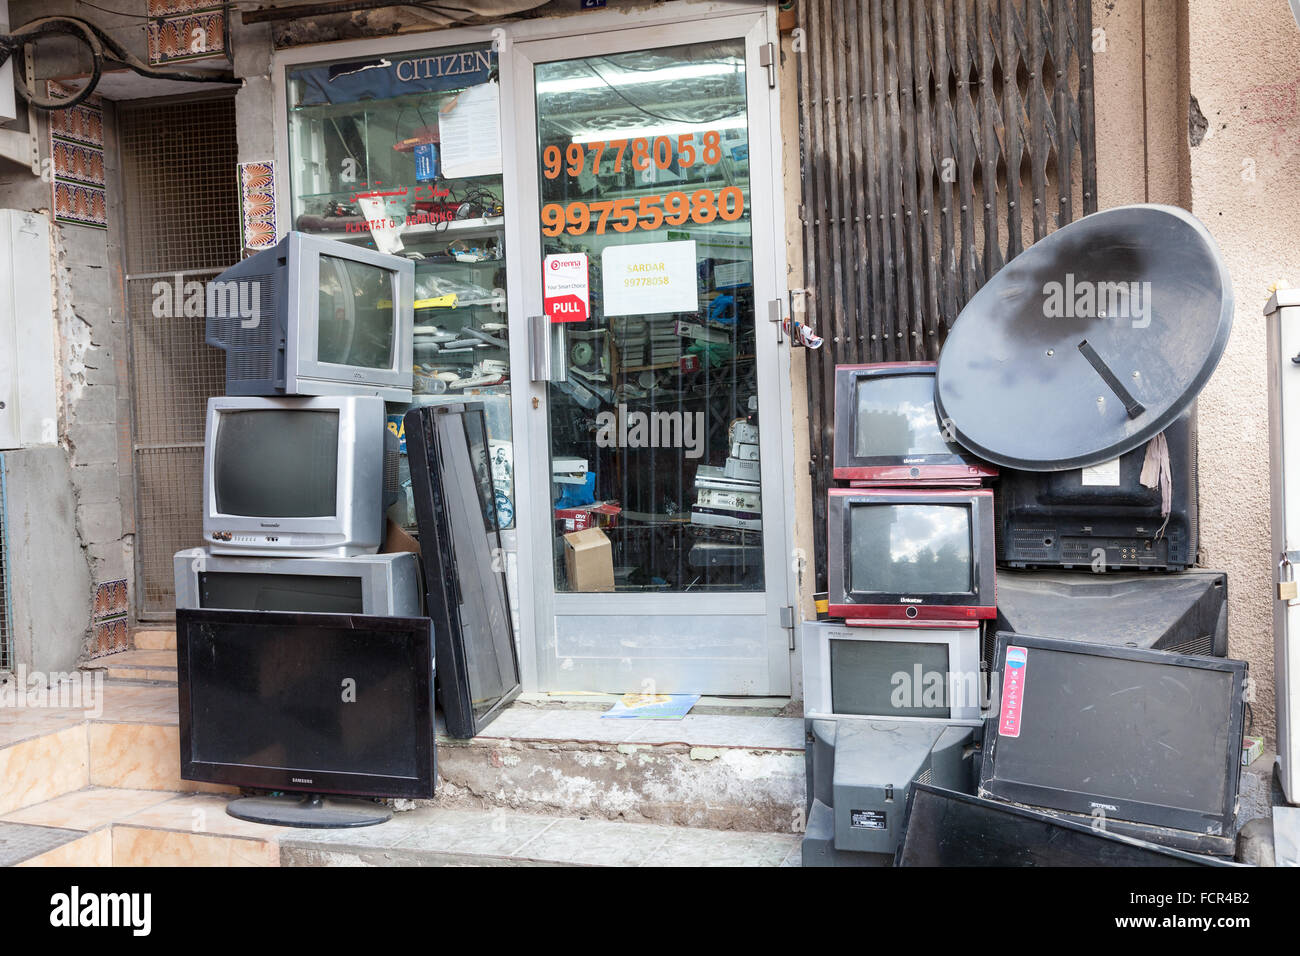 tv repair shop. stock photo - tv repair shop in the old town of nizwa. sultanate oman, middle east tv